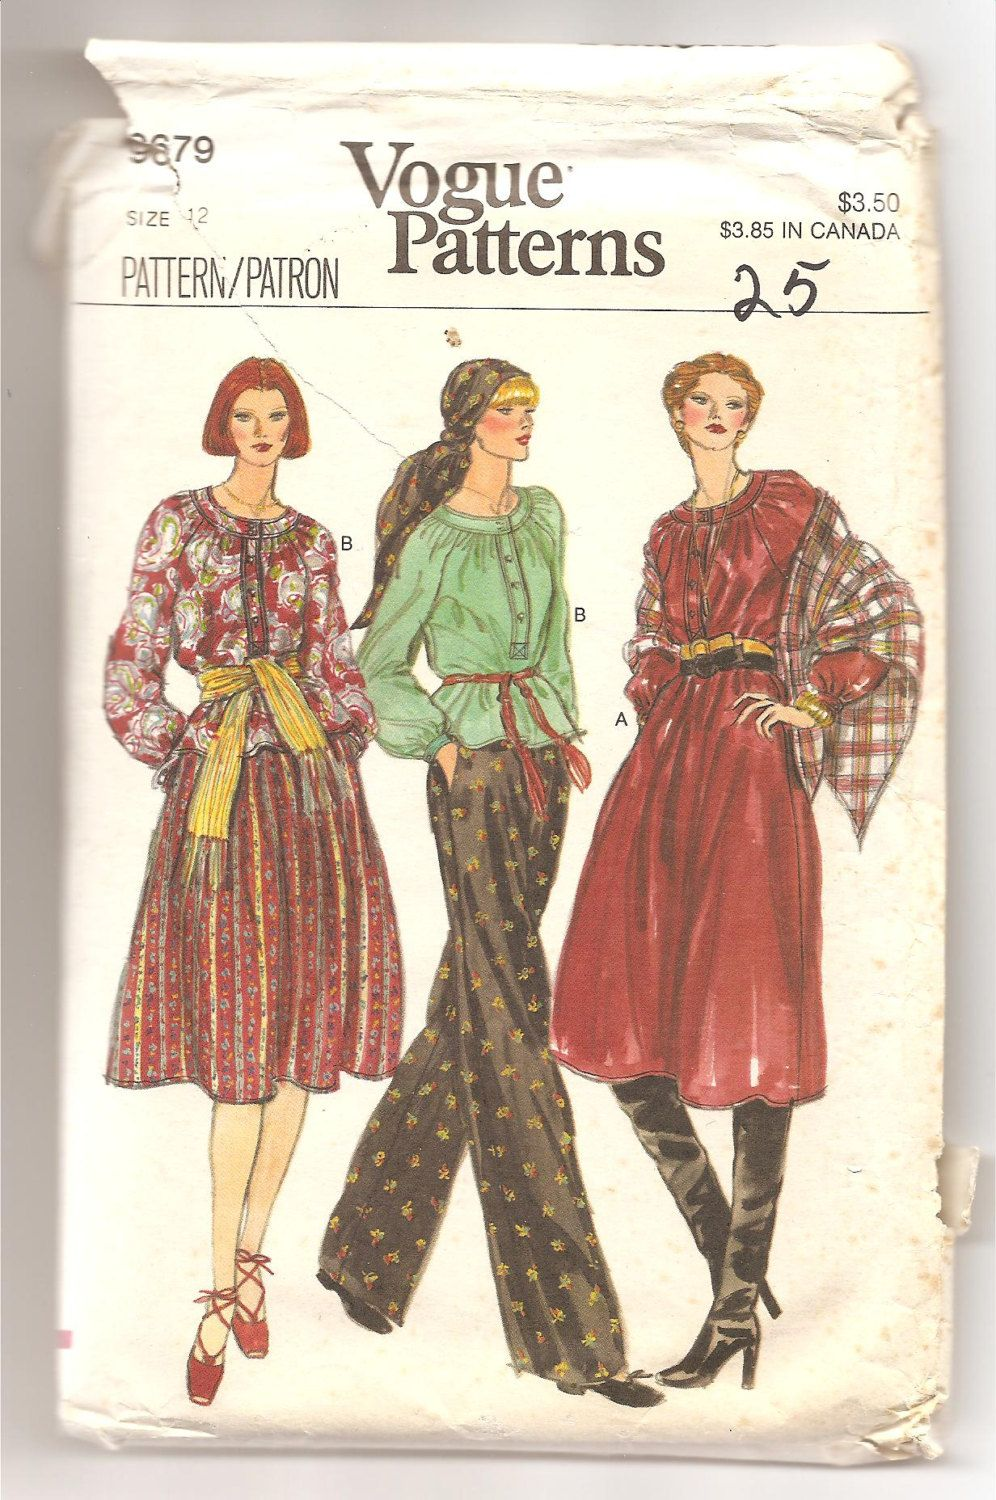 Vintage Boho Vogue Pattern 1970s Dress Blouse Pants Dirndl Skirt